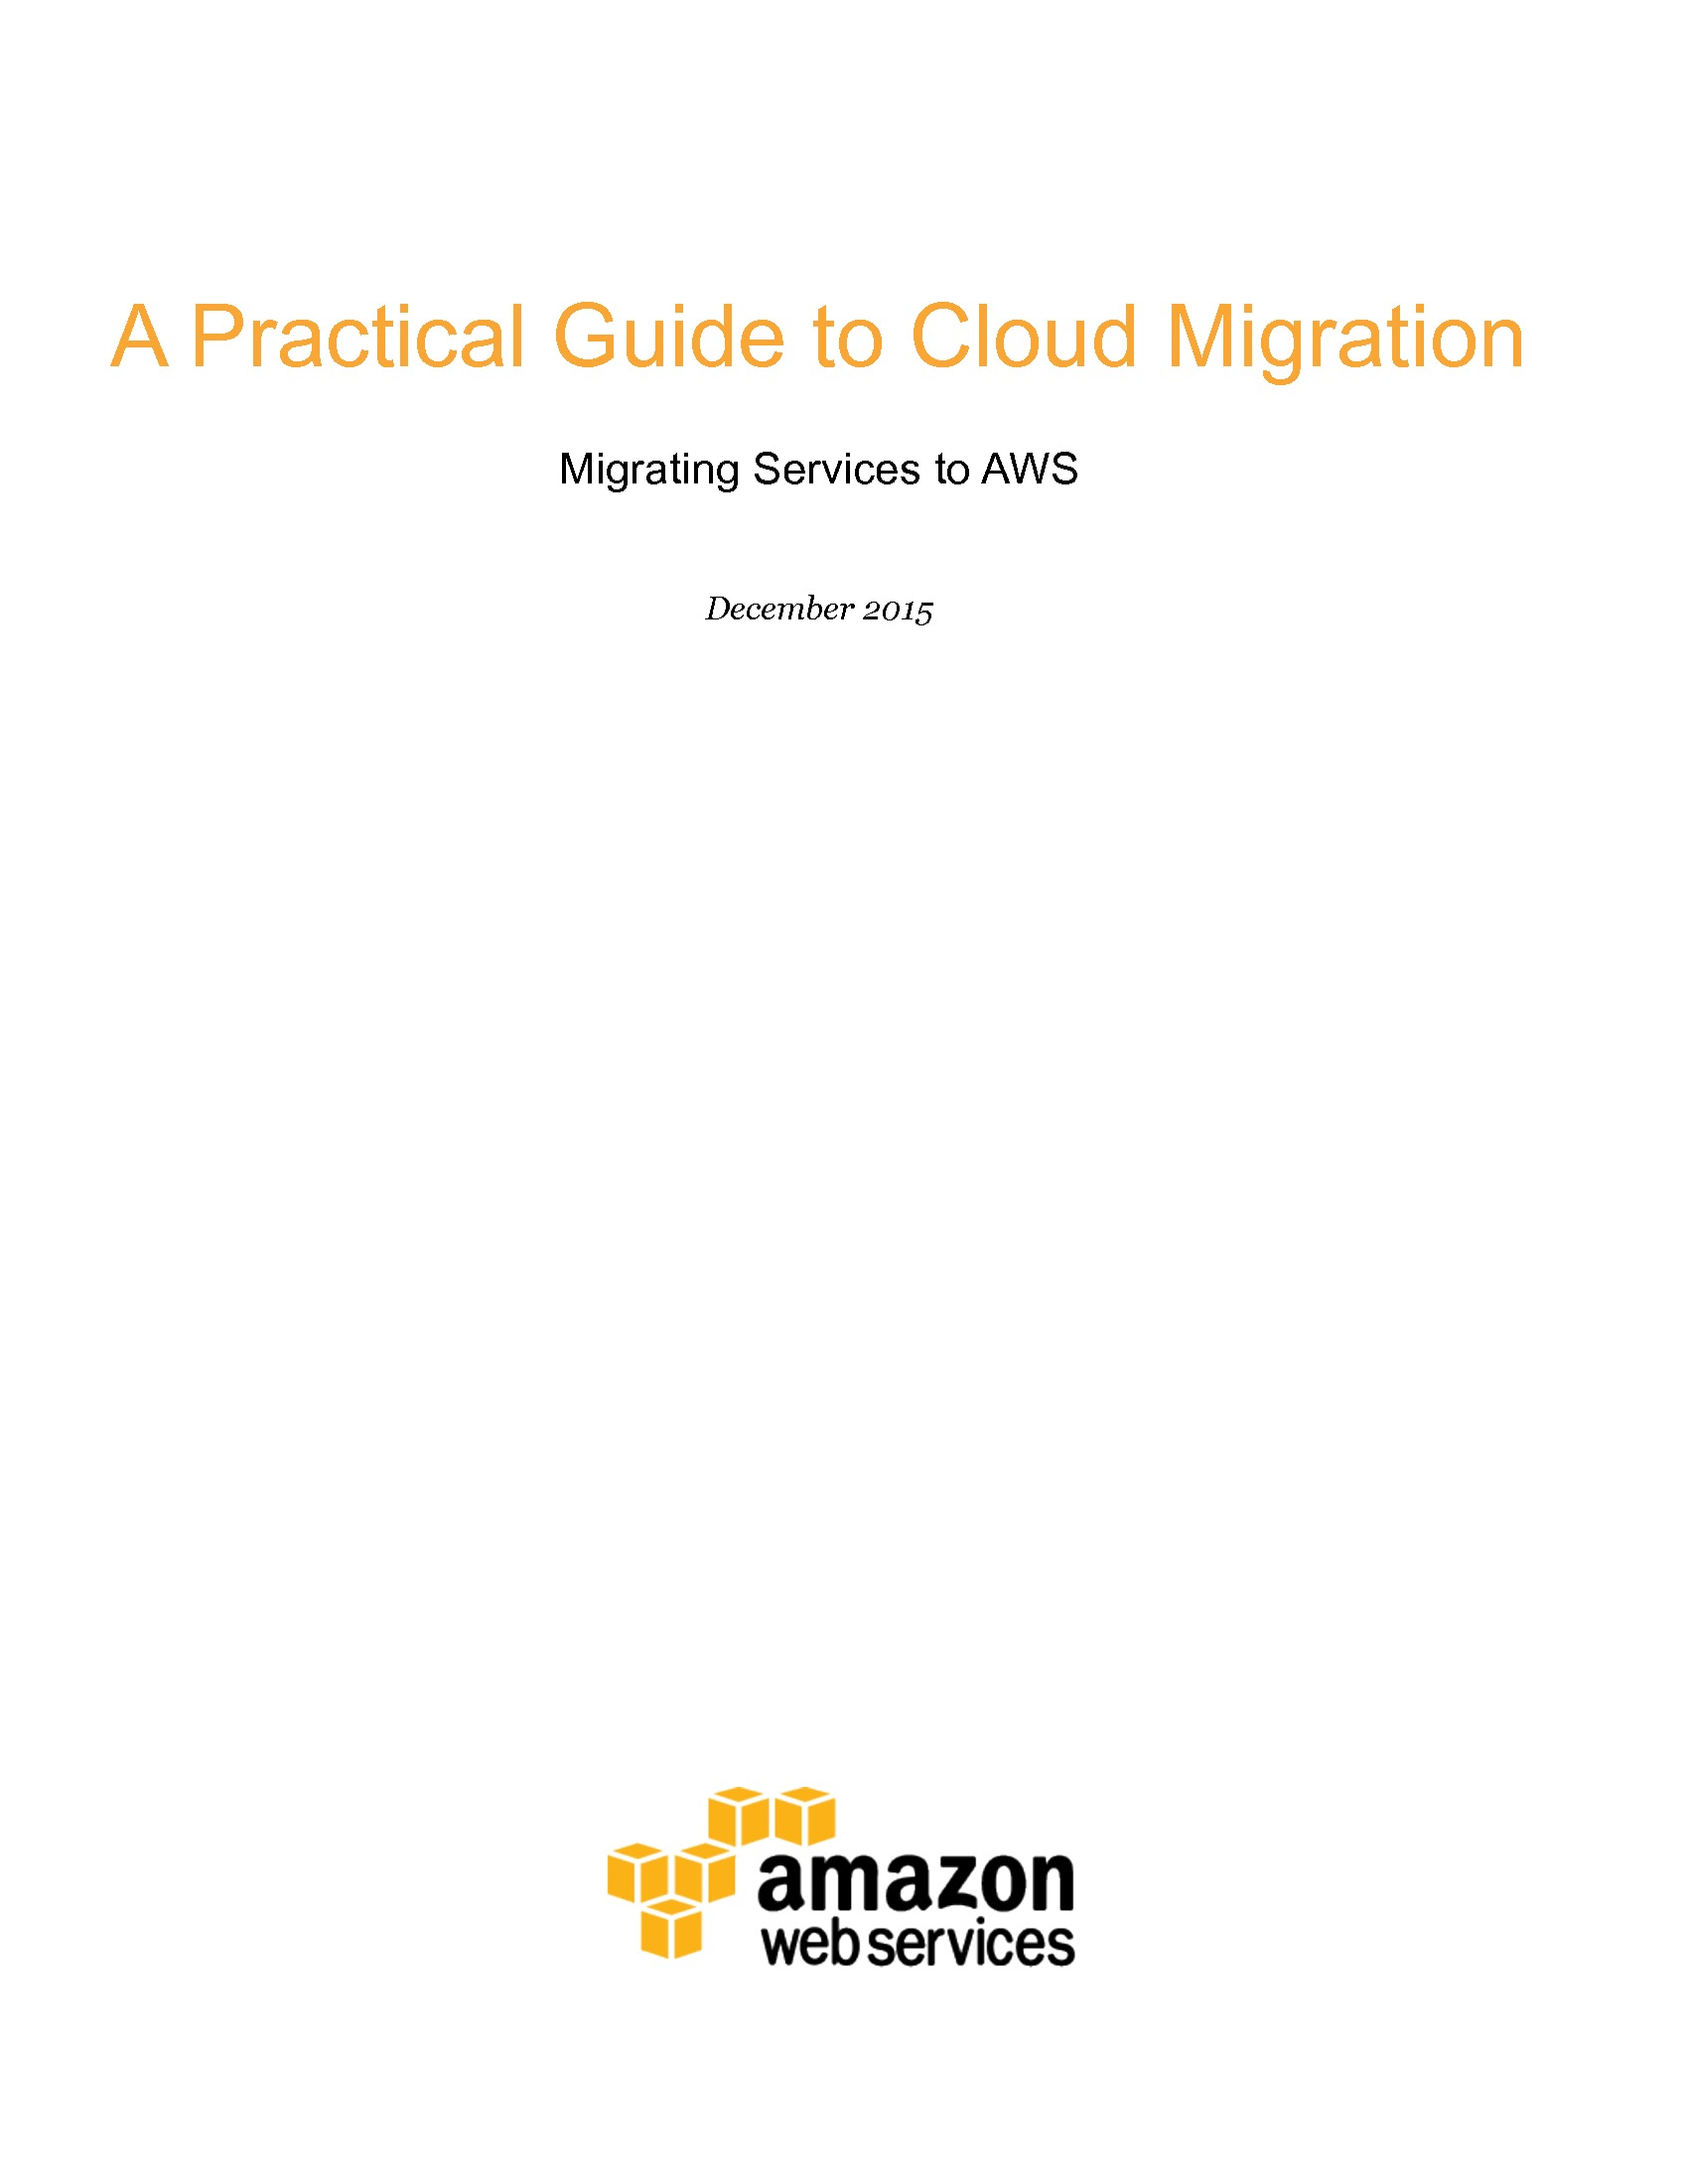 GT - Amazon - 2019 Microsite - A Practical Guide to Cloud Migration